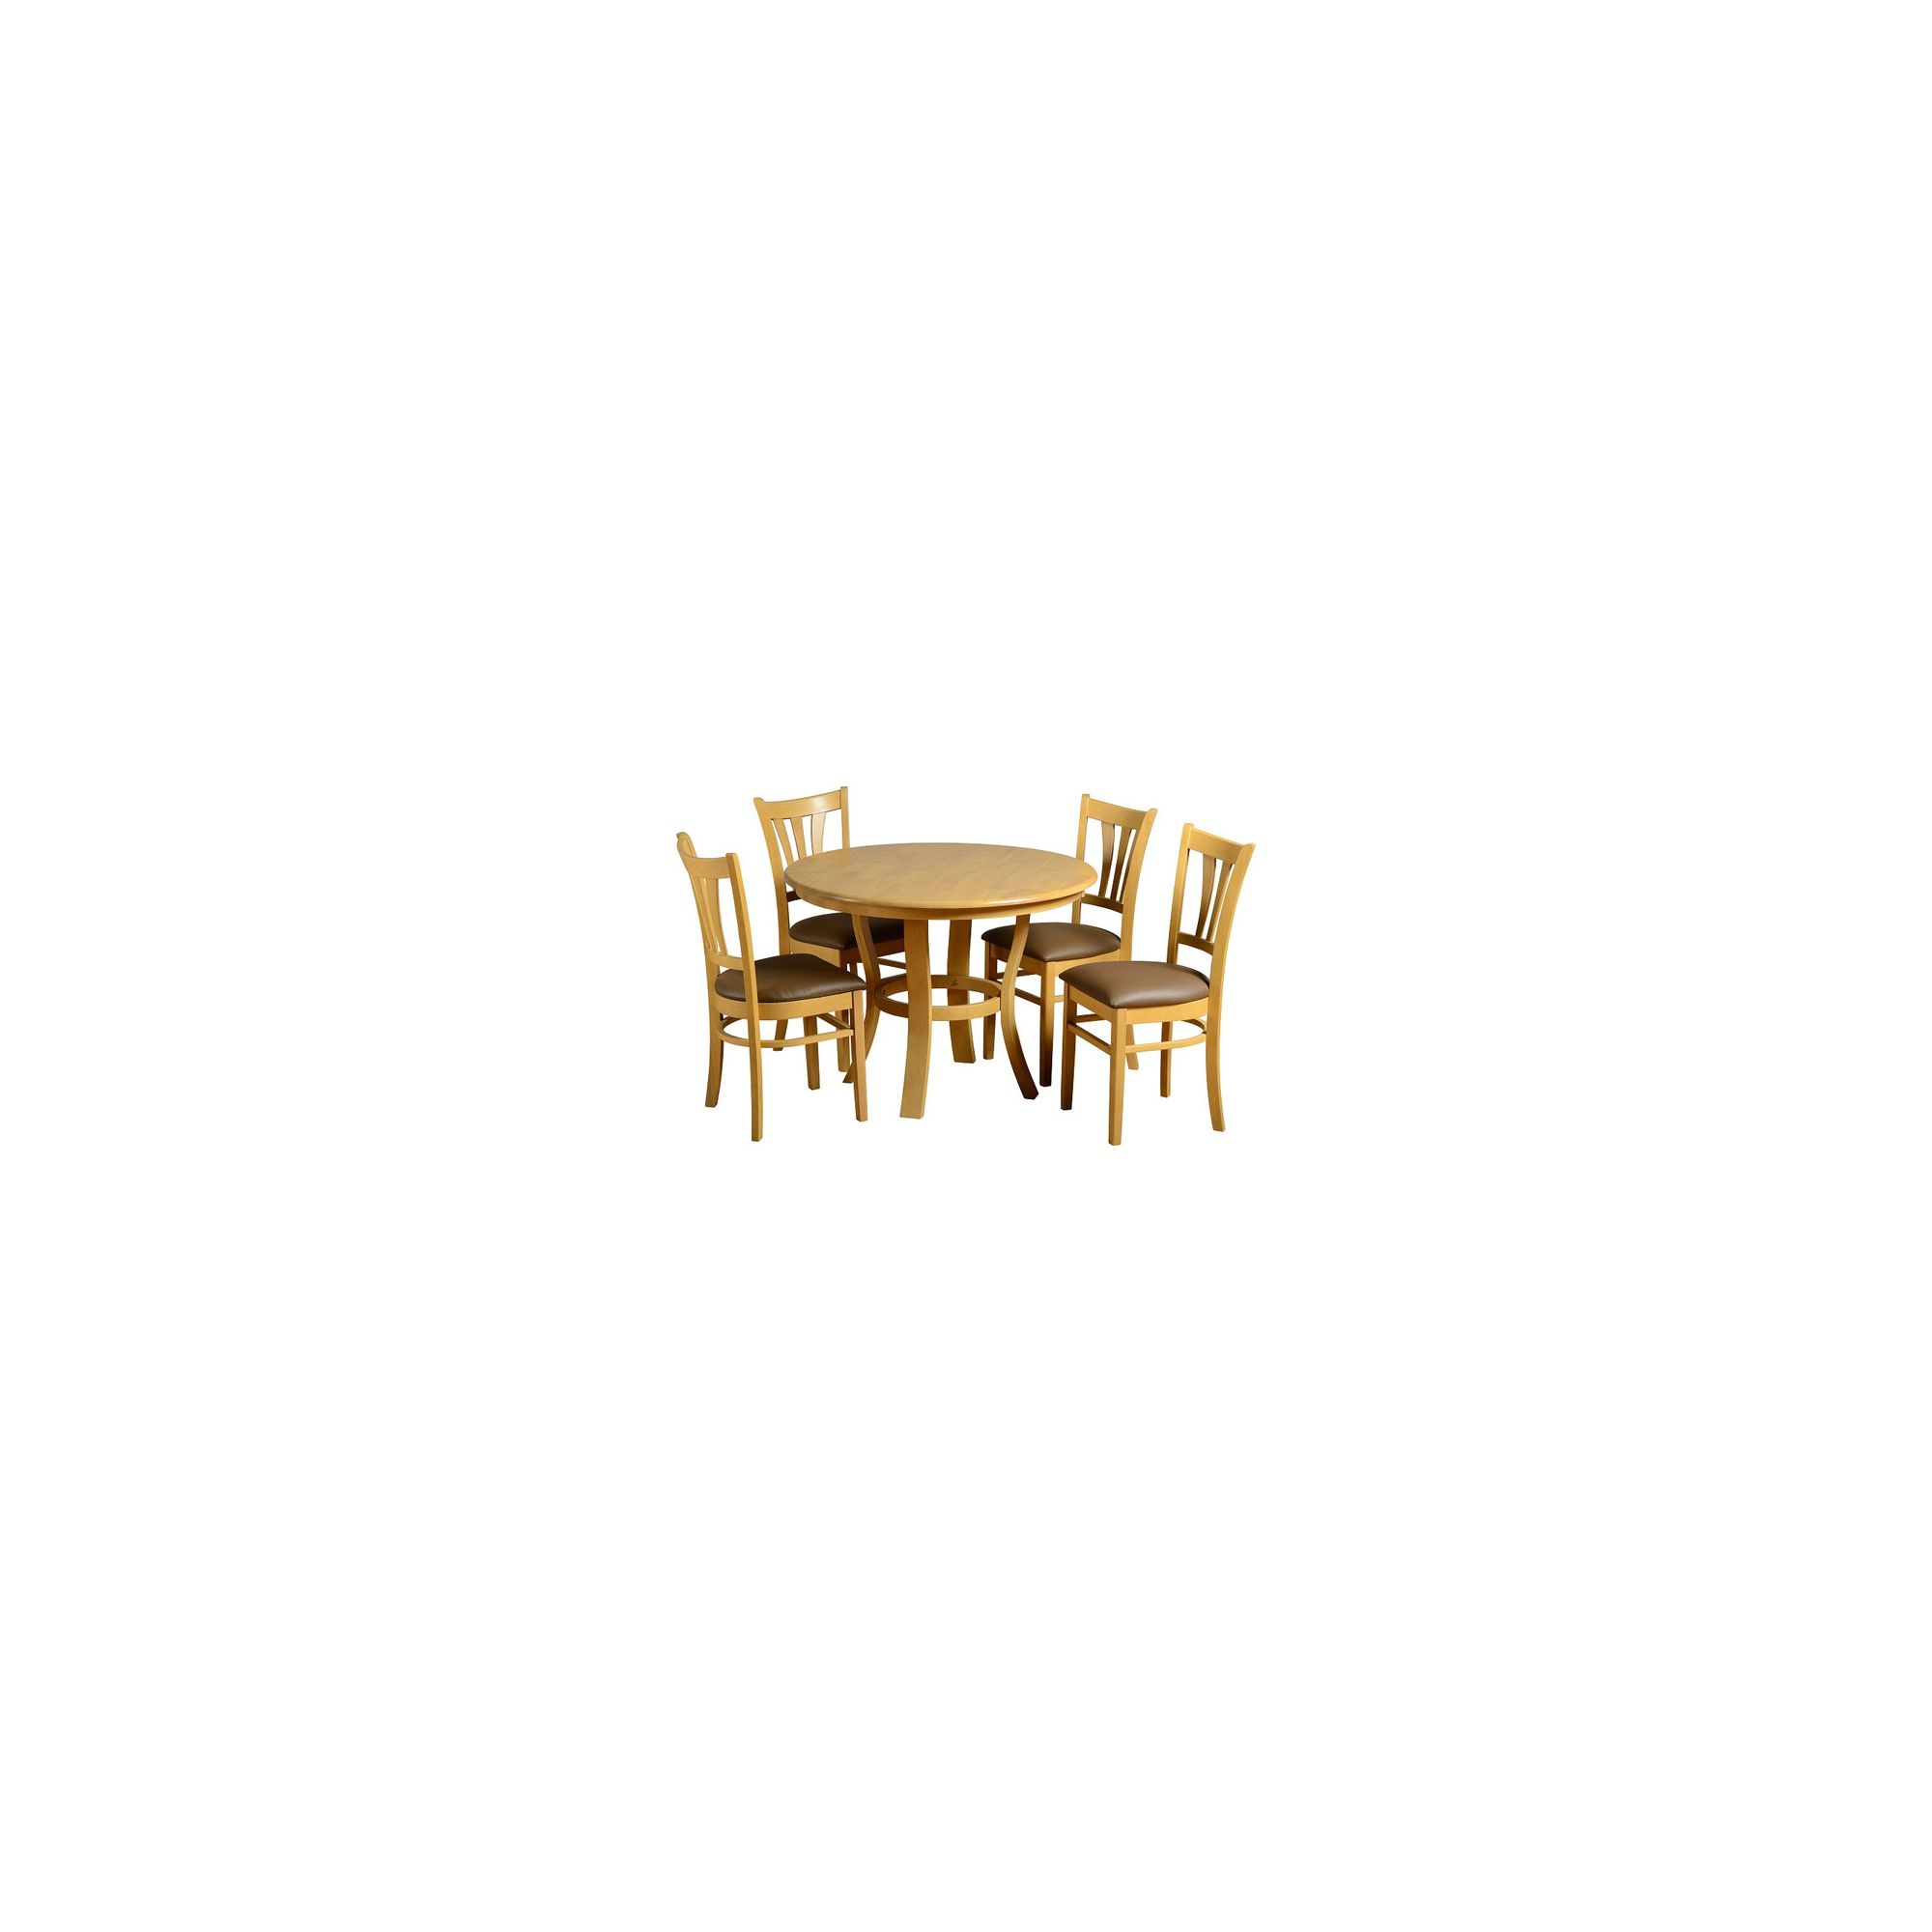 Home Essence Grosvenor Round 5 Piece Dining Set - Natural Oak Veneer